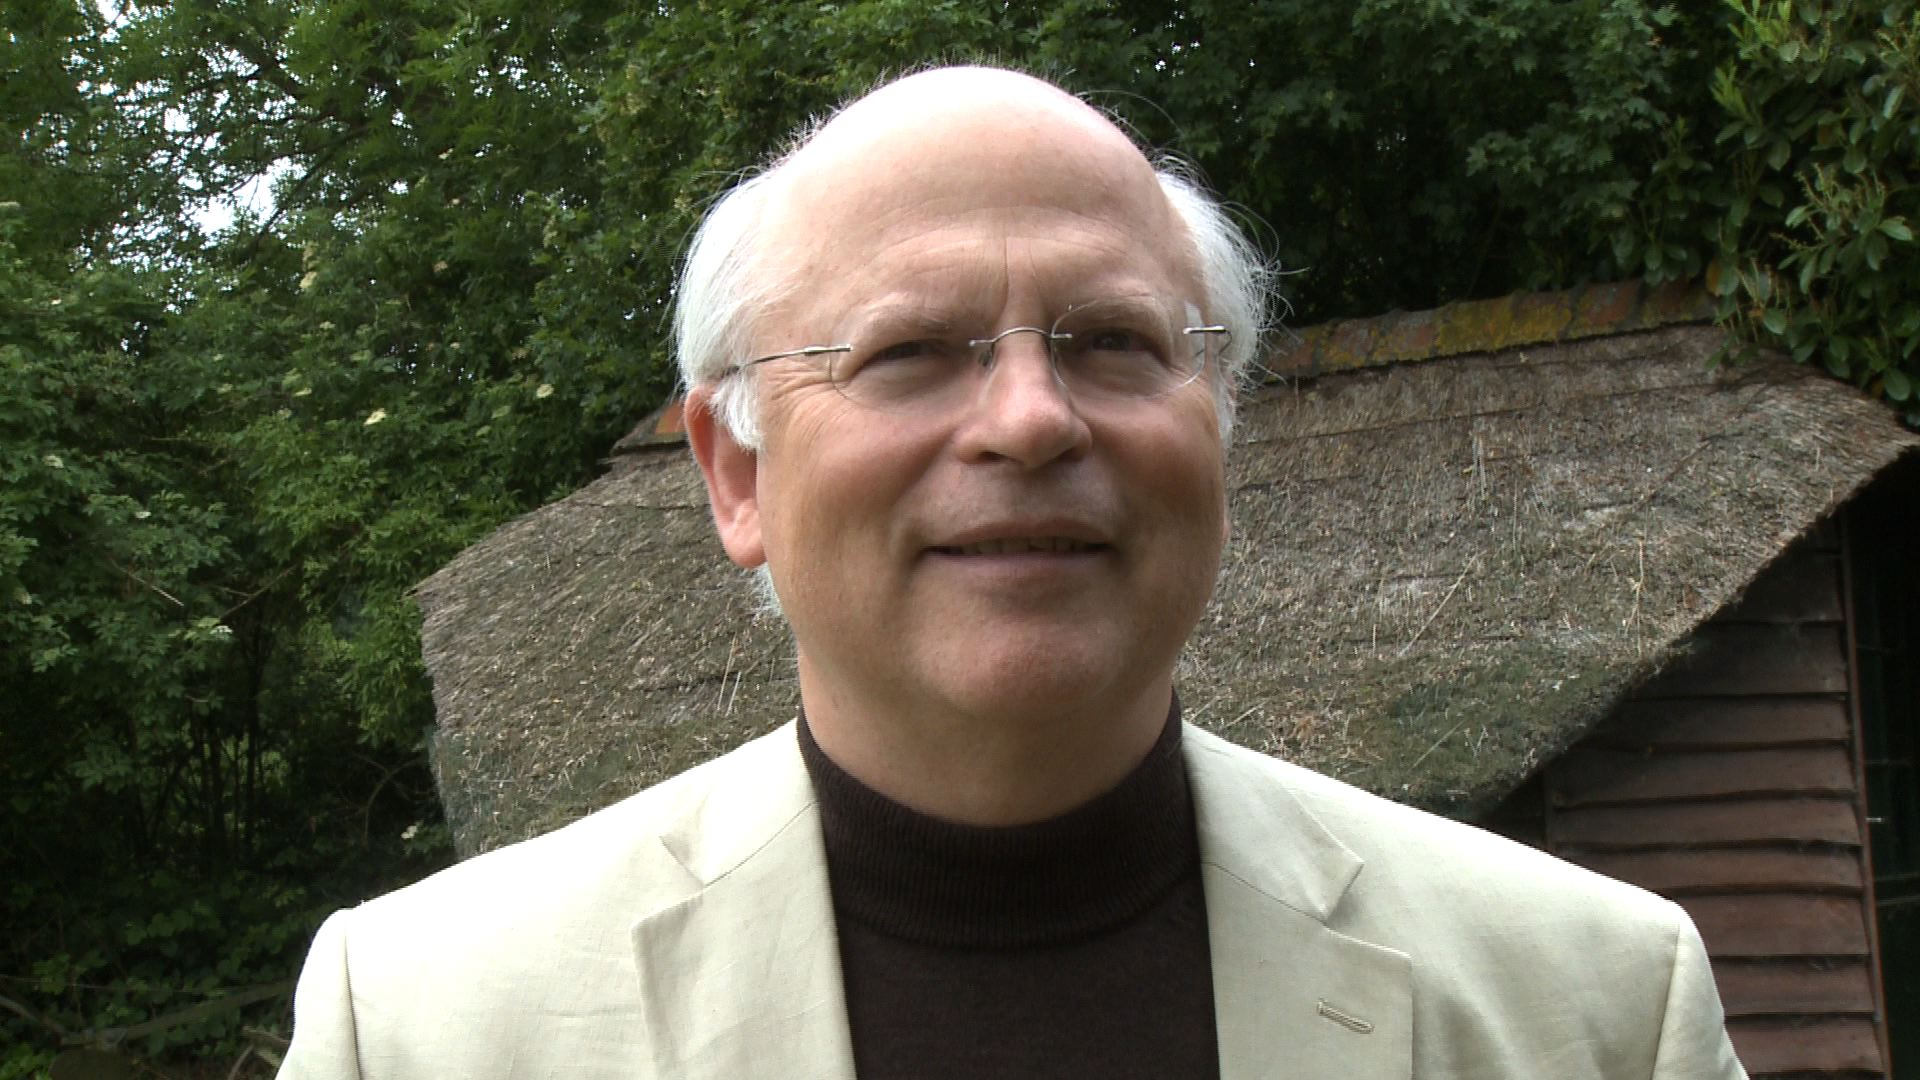 Arthur Zajonc on 'Insides for Change' 11-11-2012